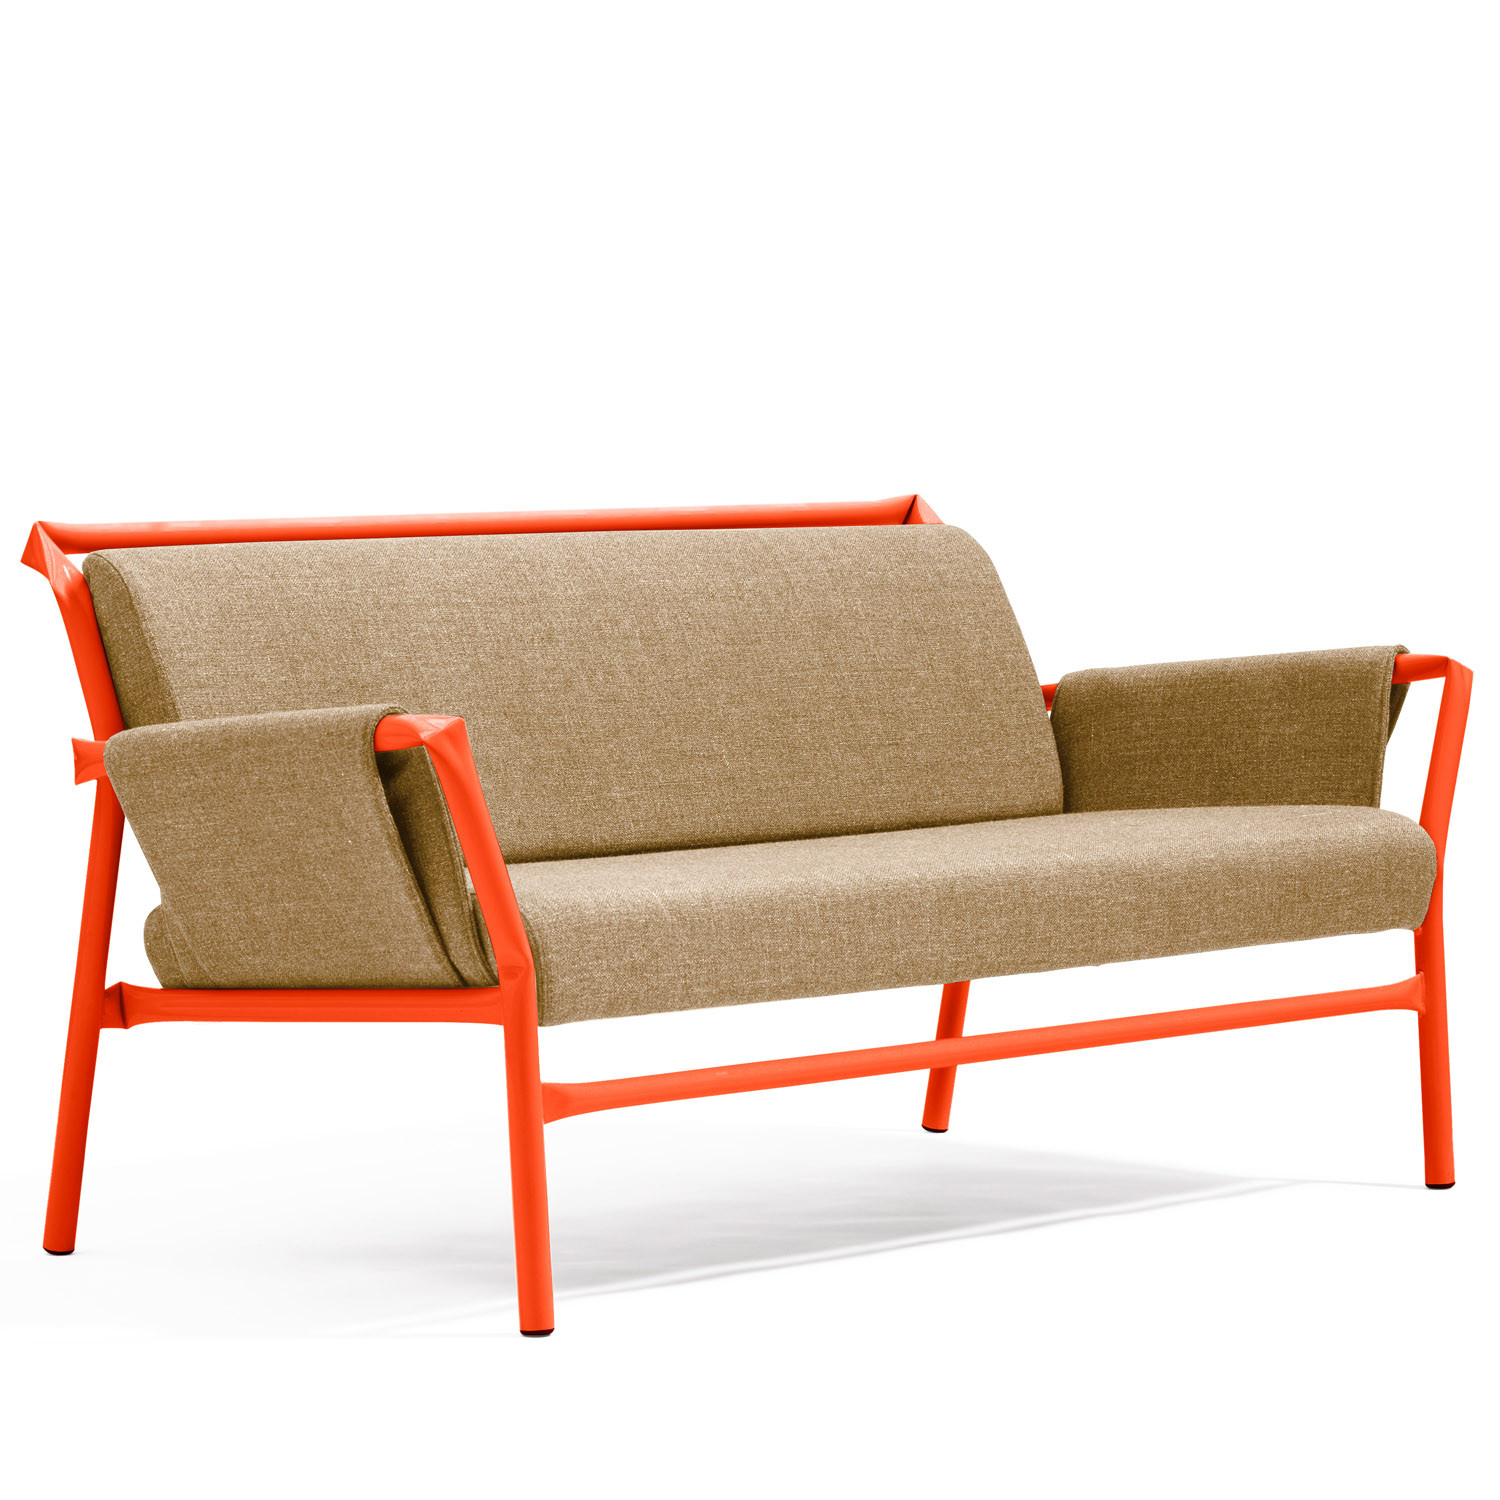 Superkink Sofa by Osko + Deichmann